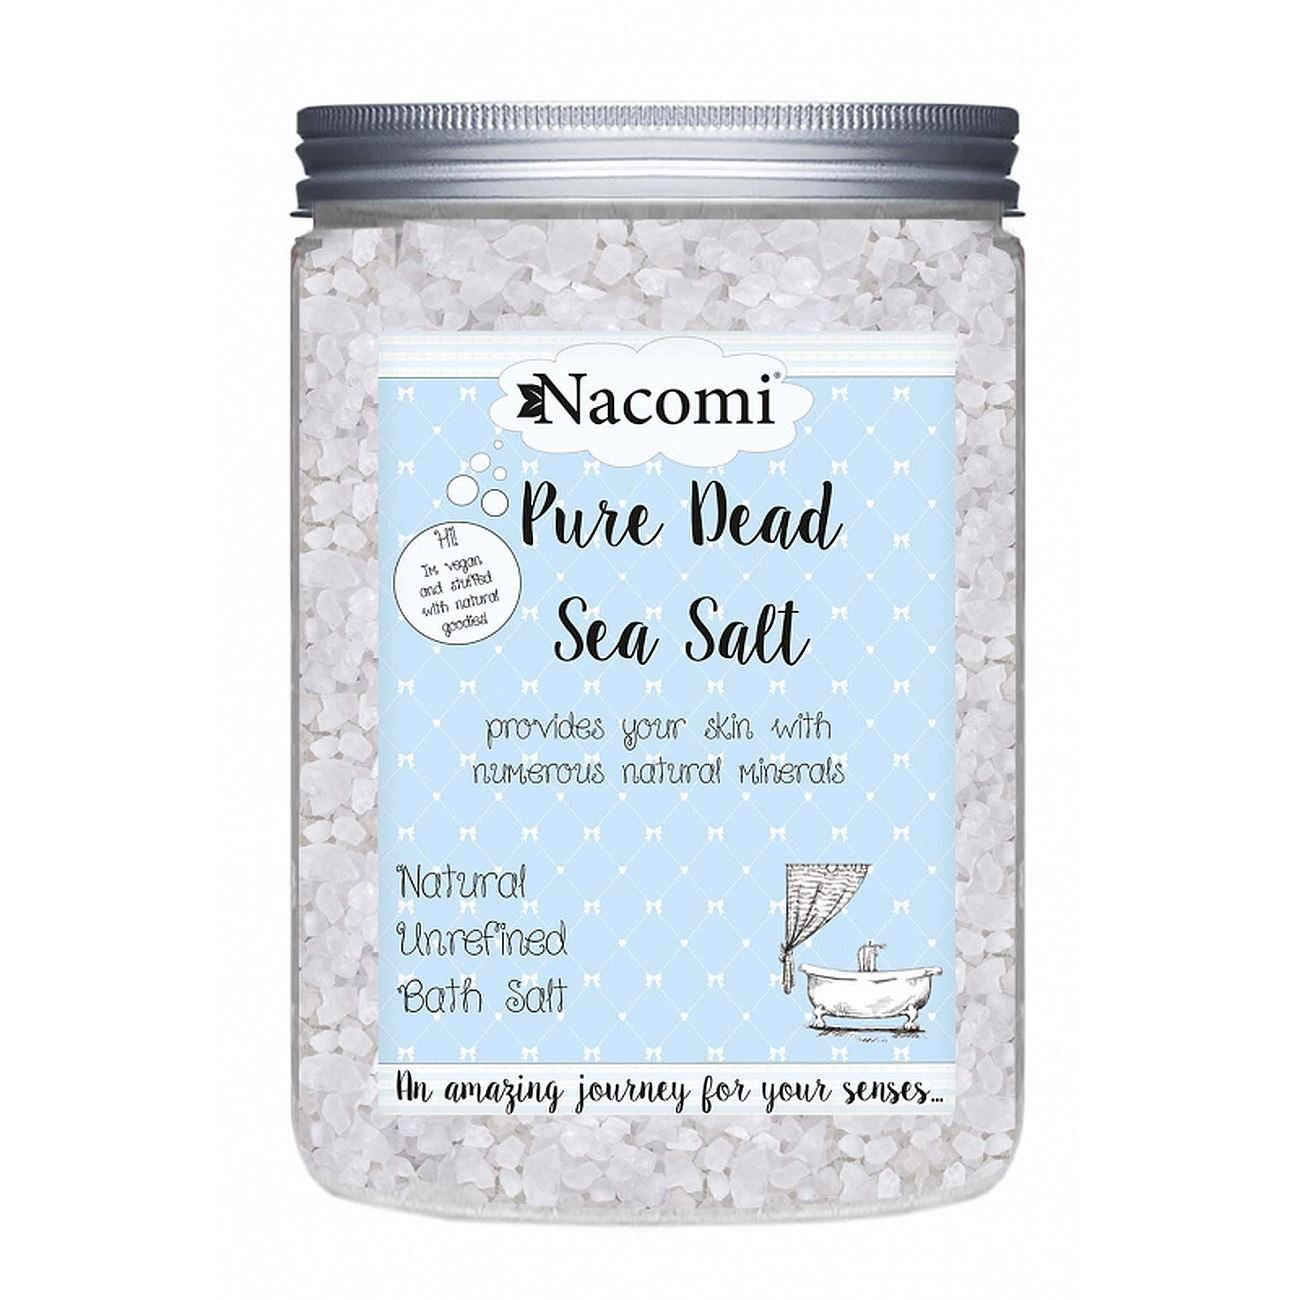 Nacomi Natural Dead Sea Bath Salt Pure 1400g